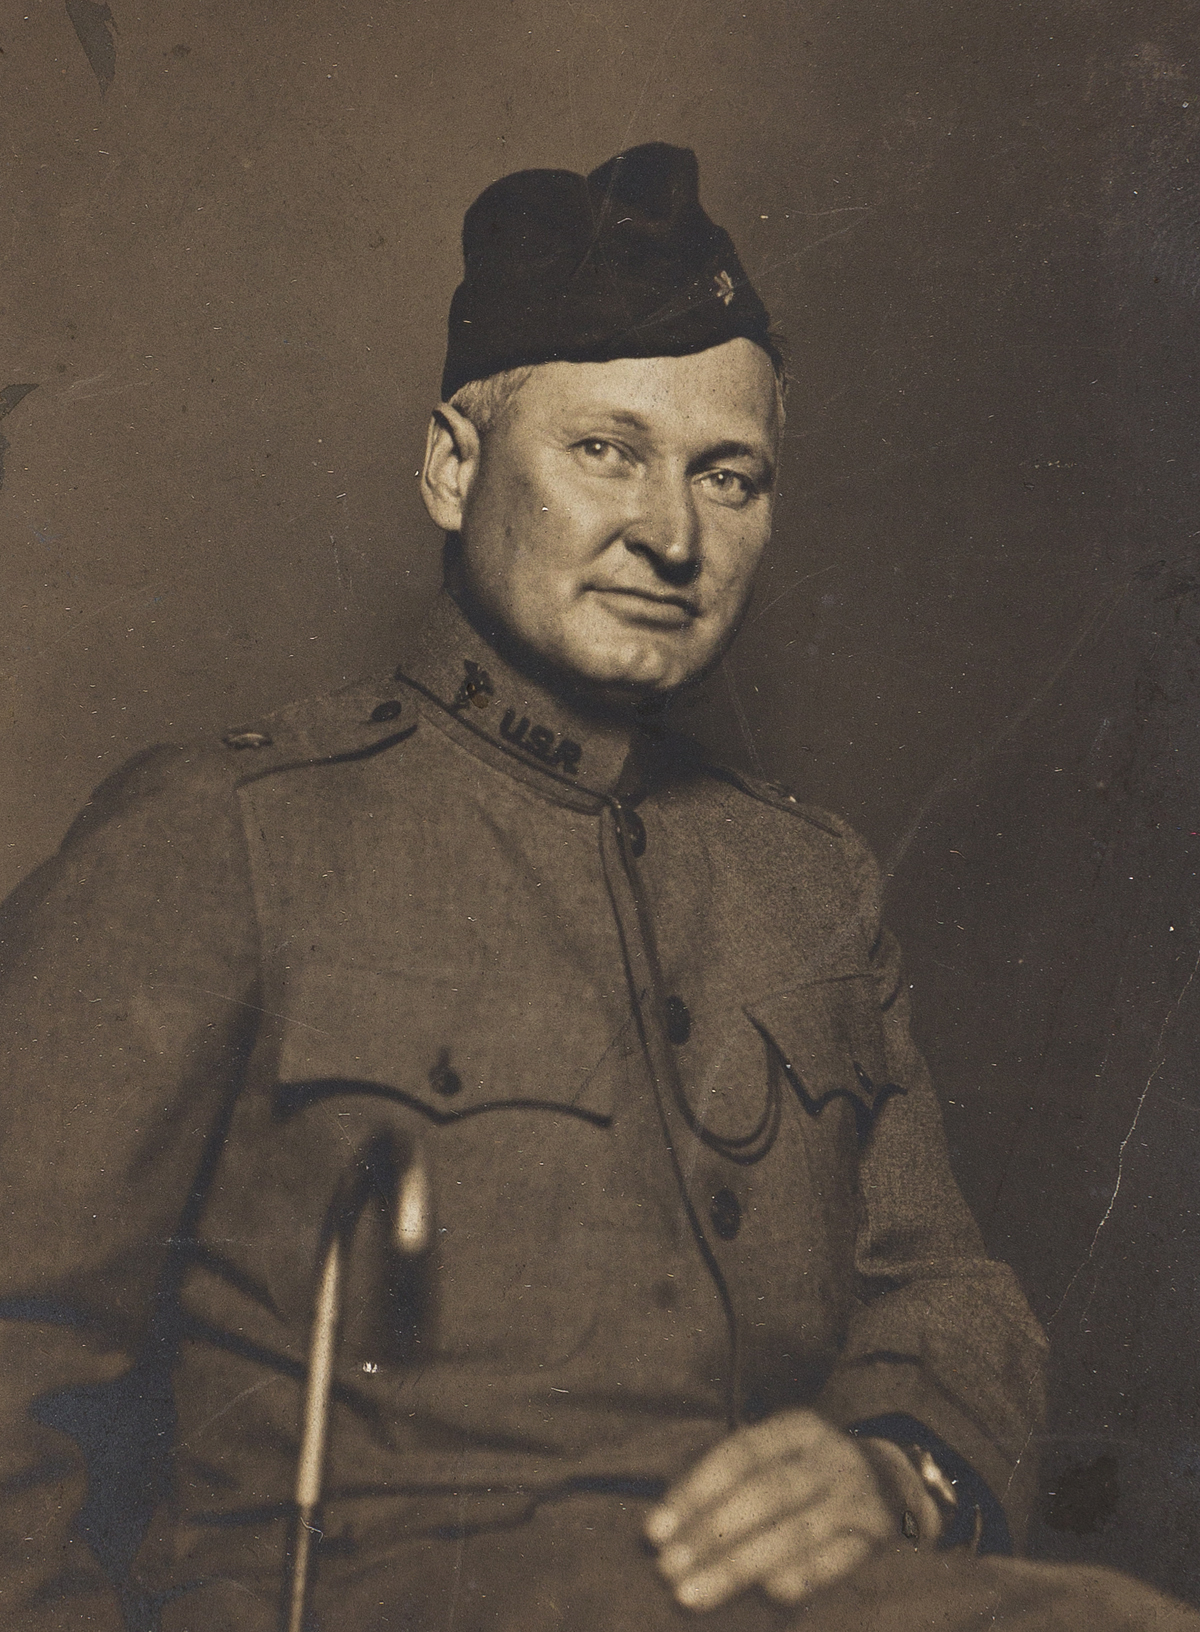 (WORLD WAR ONE.) Long run of letters home by Dr. Harlow Brooks, Chief Consultant in Medicine to the First and Second Armies in France.